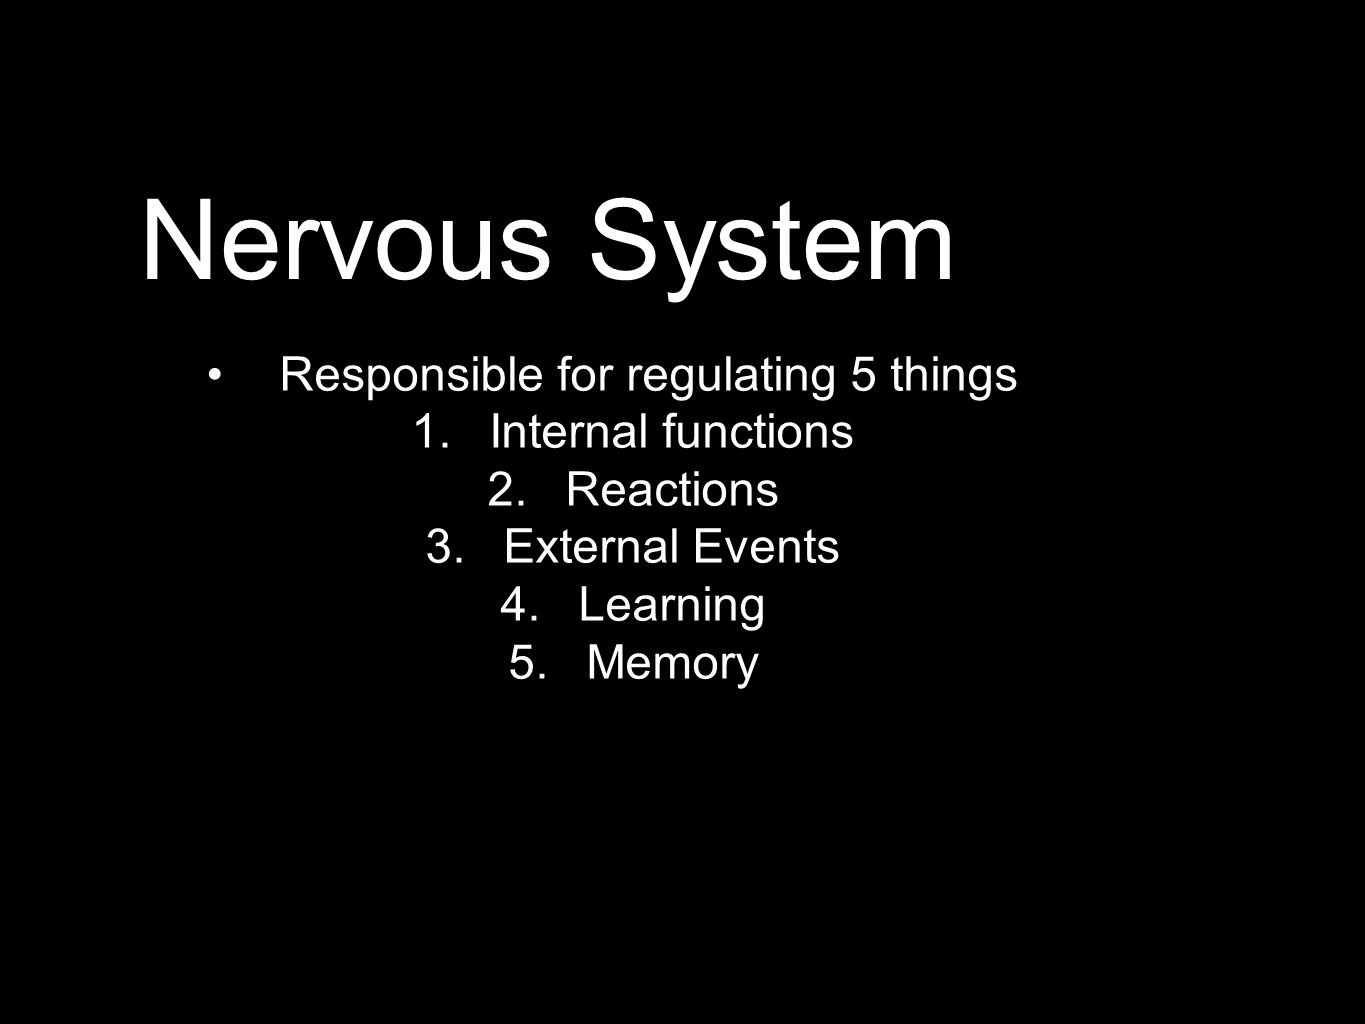 Nervous System Responsible for regulating 5 things 1.Internal functions 2.Reactions 3.External Events 4.Learning 5.Memory